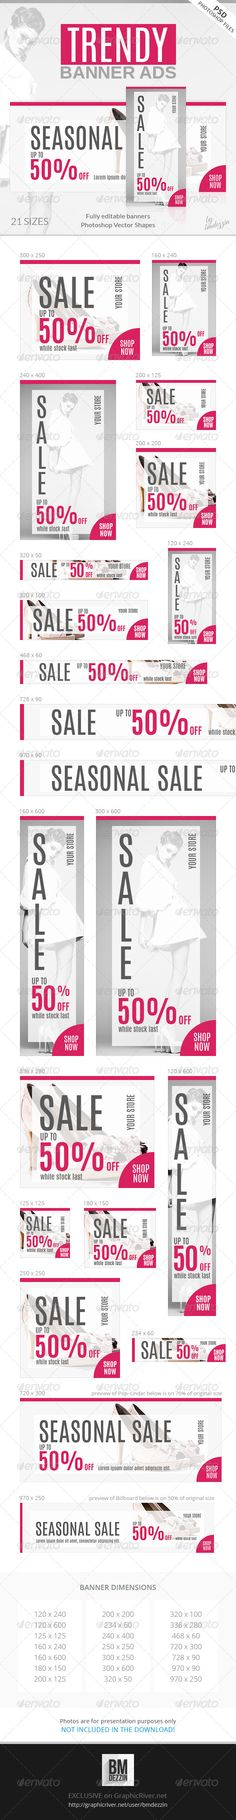 Trendy #Web_Banner Template PSD | Buy and Download: http://graphicriver.net/item/trendy-banner-ads/7828470?WT.ac=category_thumb&WT.z_author=bmdezzin&ref=ksioks